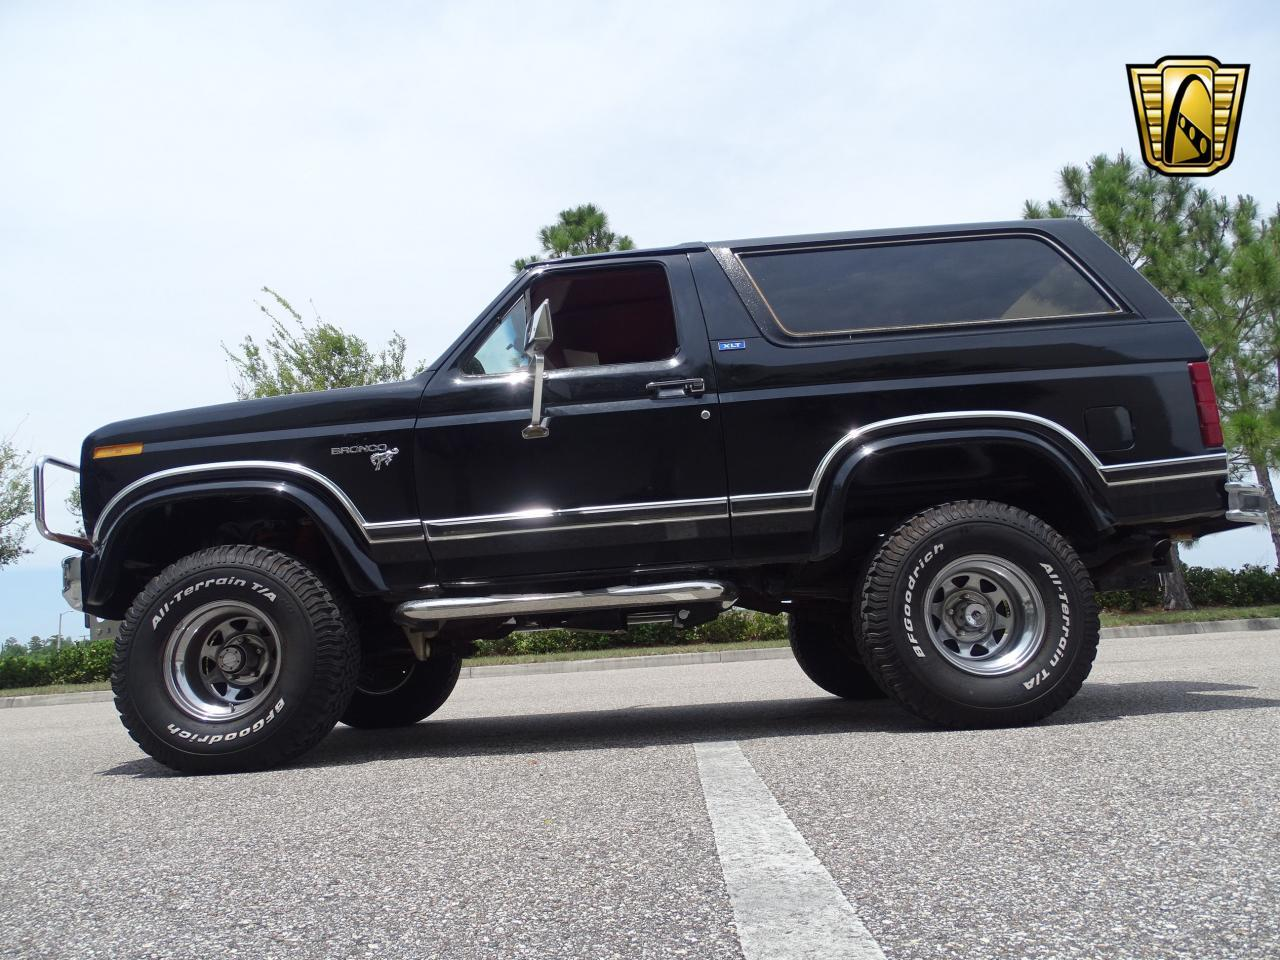 1980 Ford Bronco For Sale Cc 1092446 Fuel Line Large Picture Of Nexq